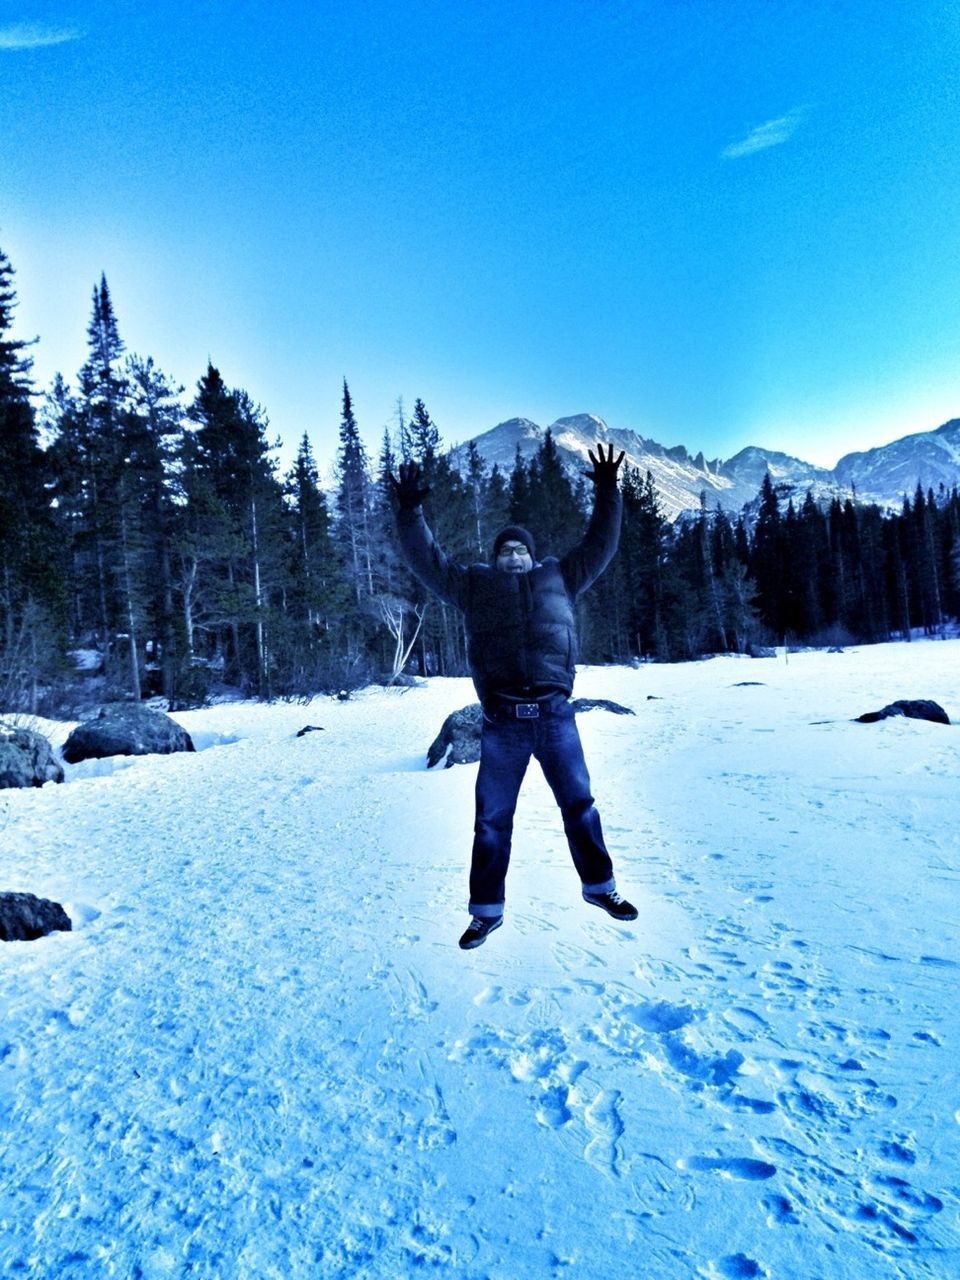 snow, winter, cold temperature, real people, leisure activity, one person, day, clear sky, weather, nature, blue, rear view, outdoors, lifestyles, full length, adventure, frozen, men, vacations, standing, scenics, beauty in nature, mountain, sky, warm clothing, snowboarding, tree, people